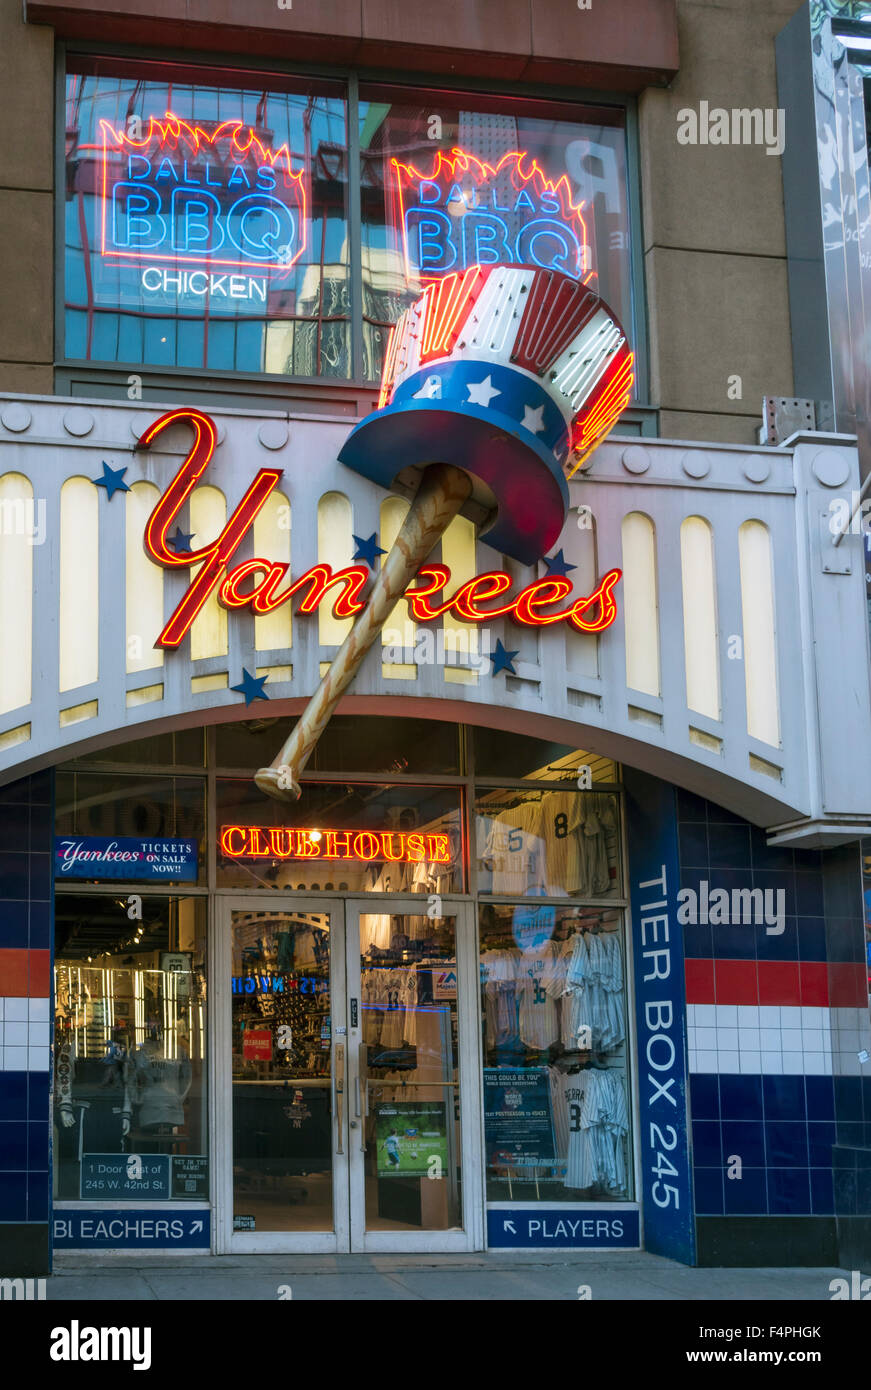 Yankees Clubhouse store on 42nd Street in New York City - Stock Image